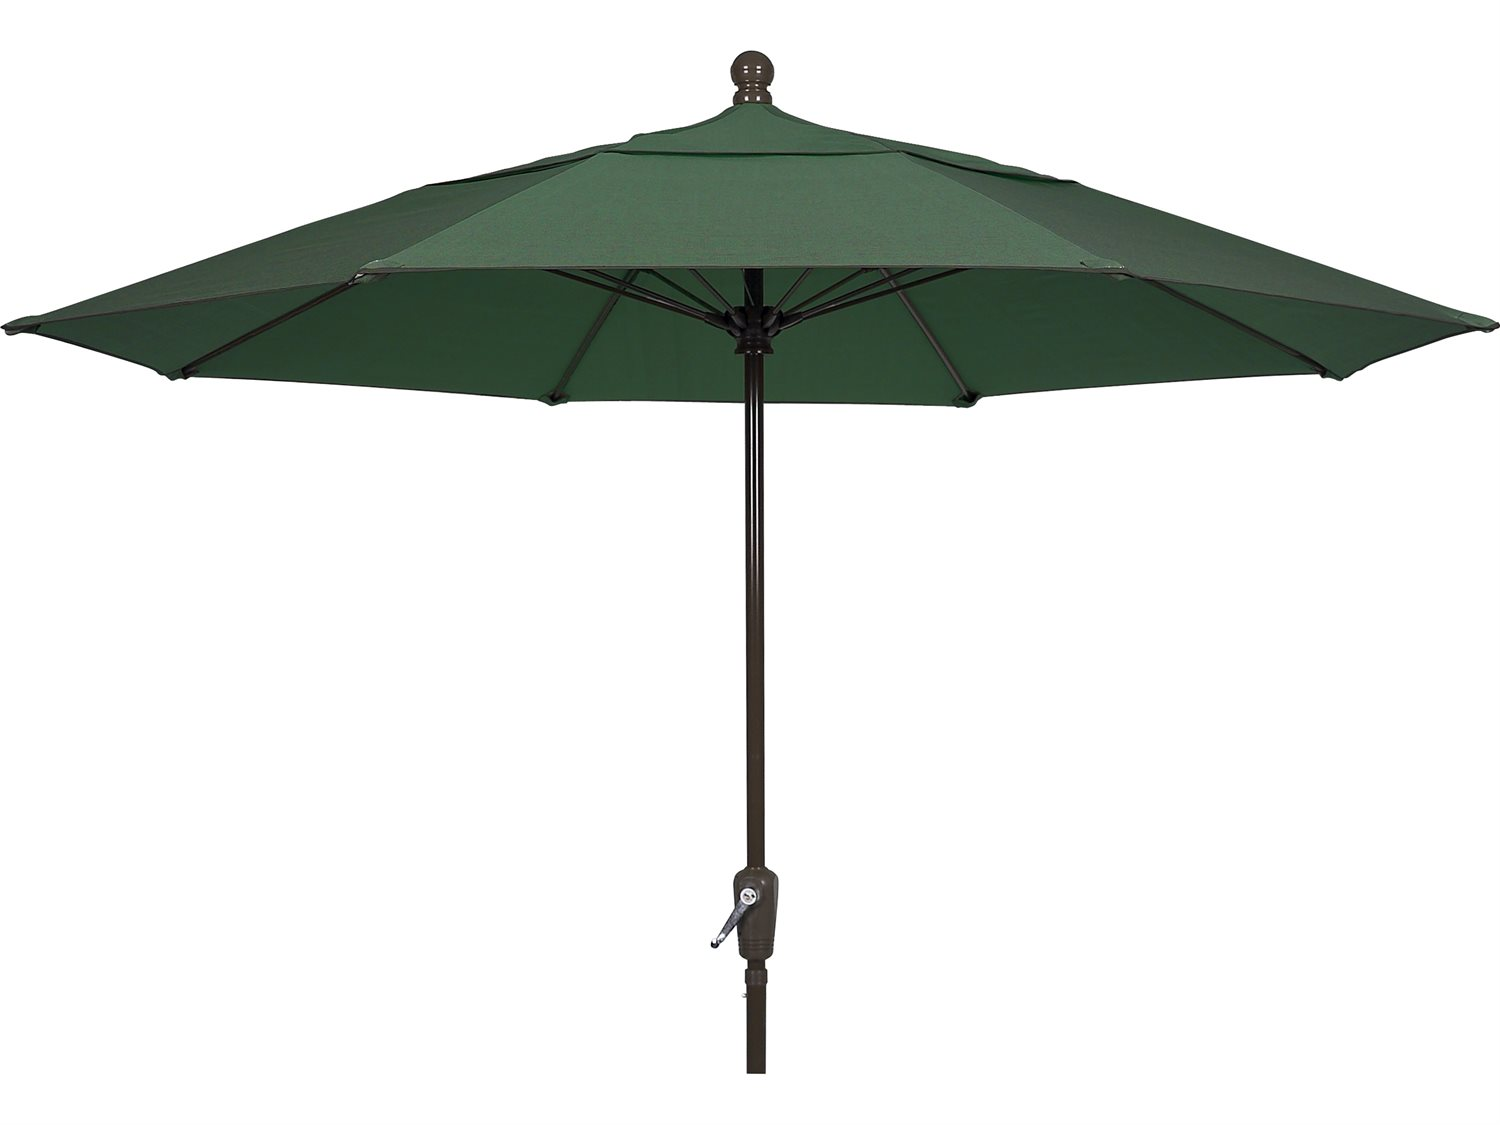 Fiberbuilt umbrellas terrace quick ship 9 foot wide crank for Terrace umbrellas